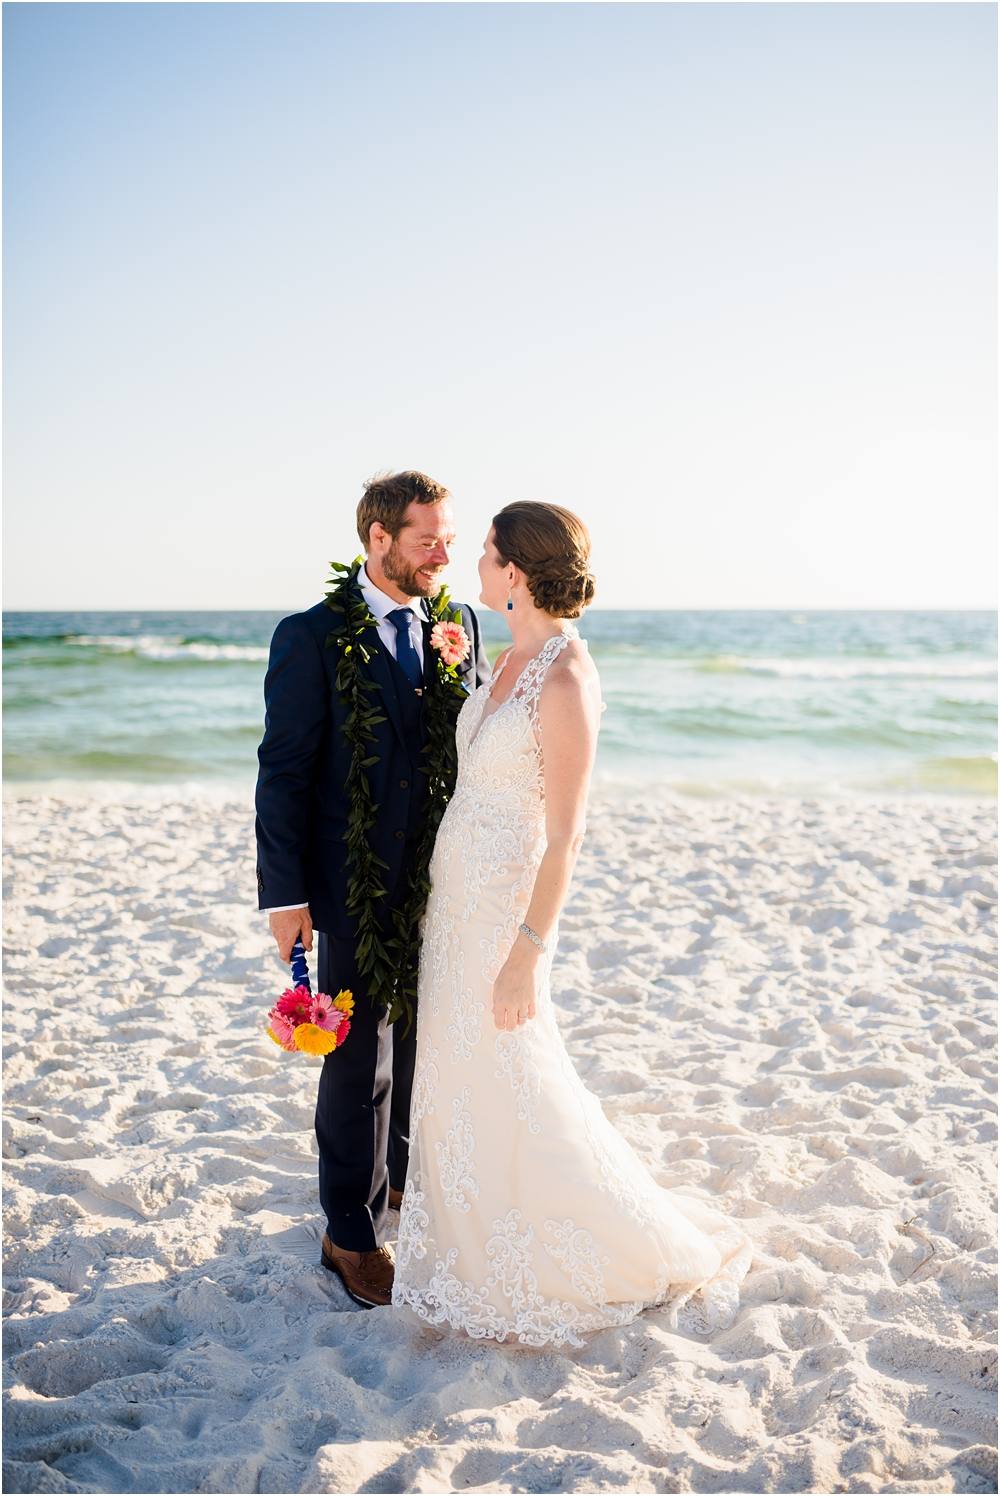 ledman-wedding-kiersten-stevenson-photography-30a-panama-city-beach-dothan-tallahassee-(280-of-763).JPG